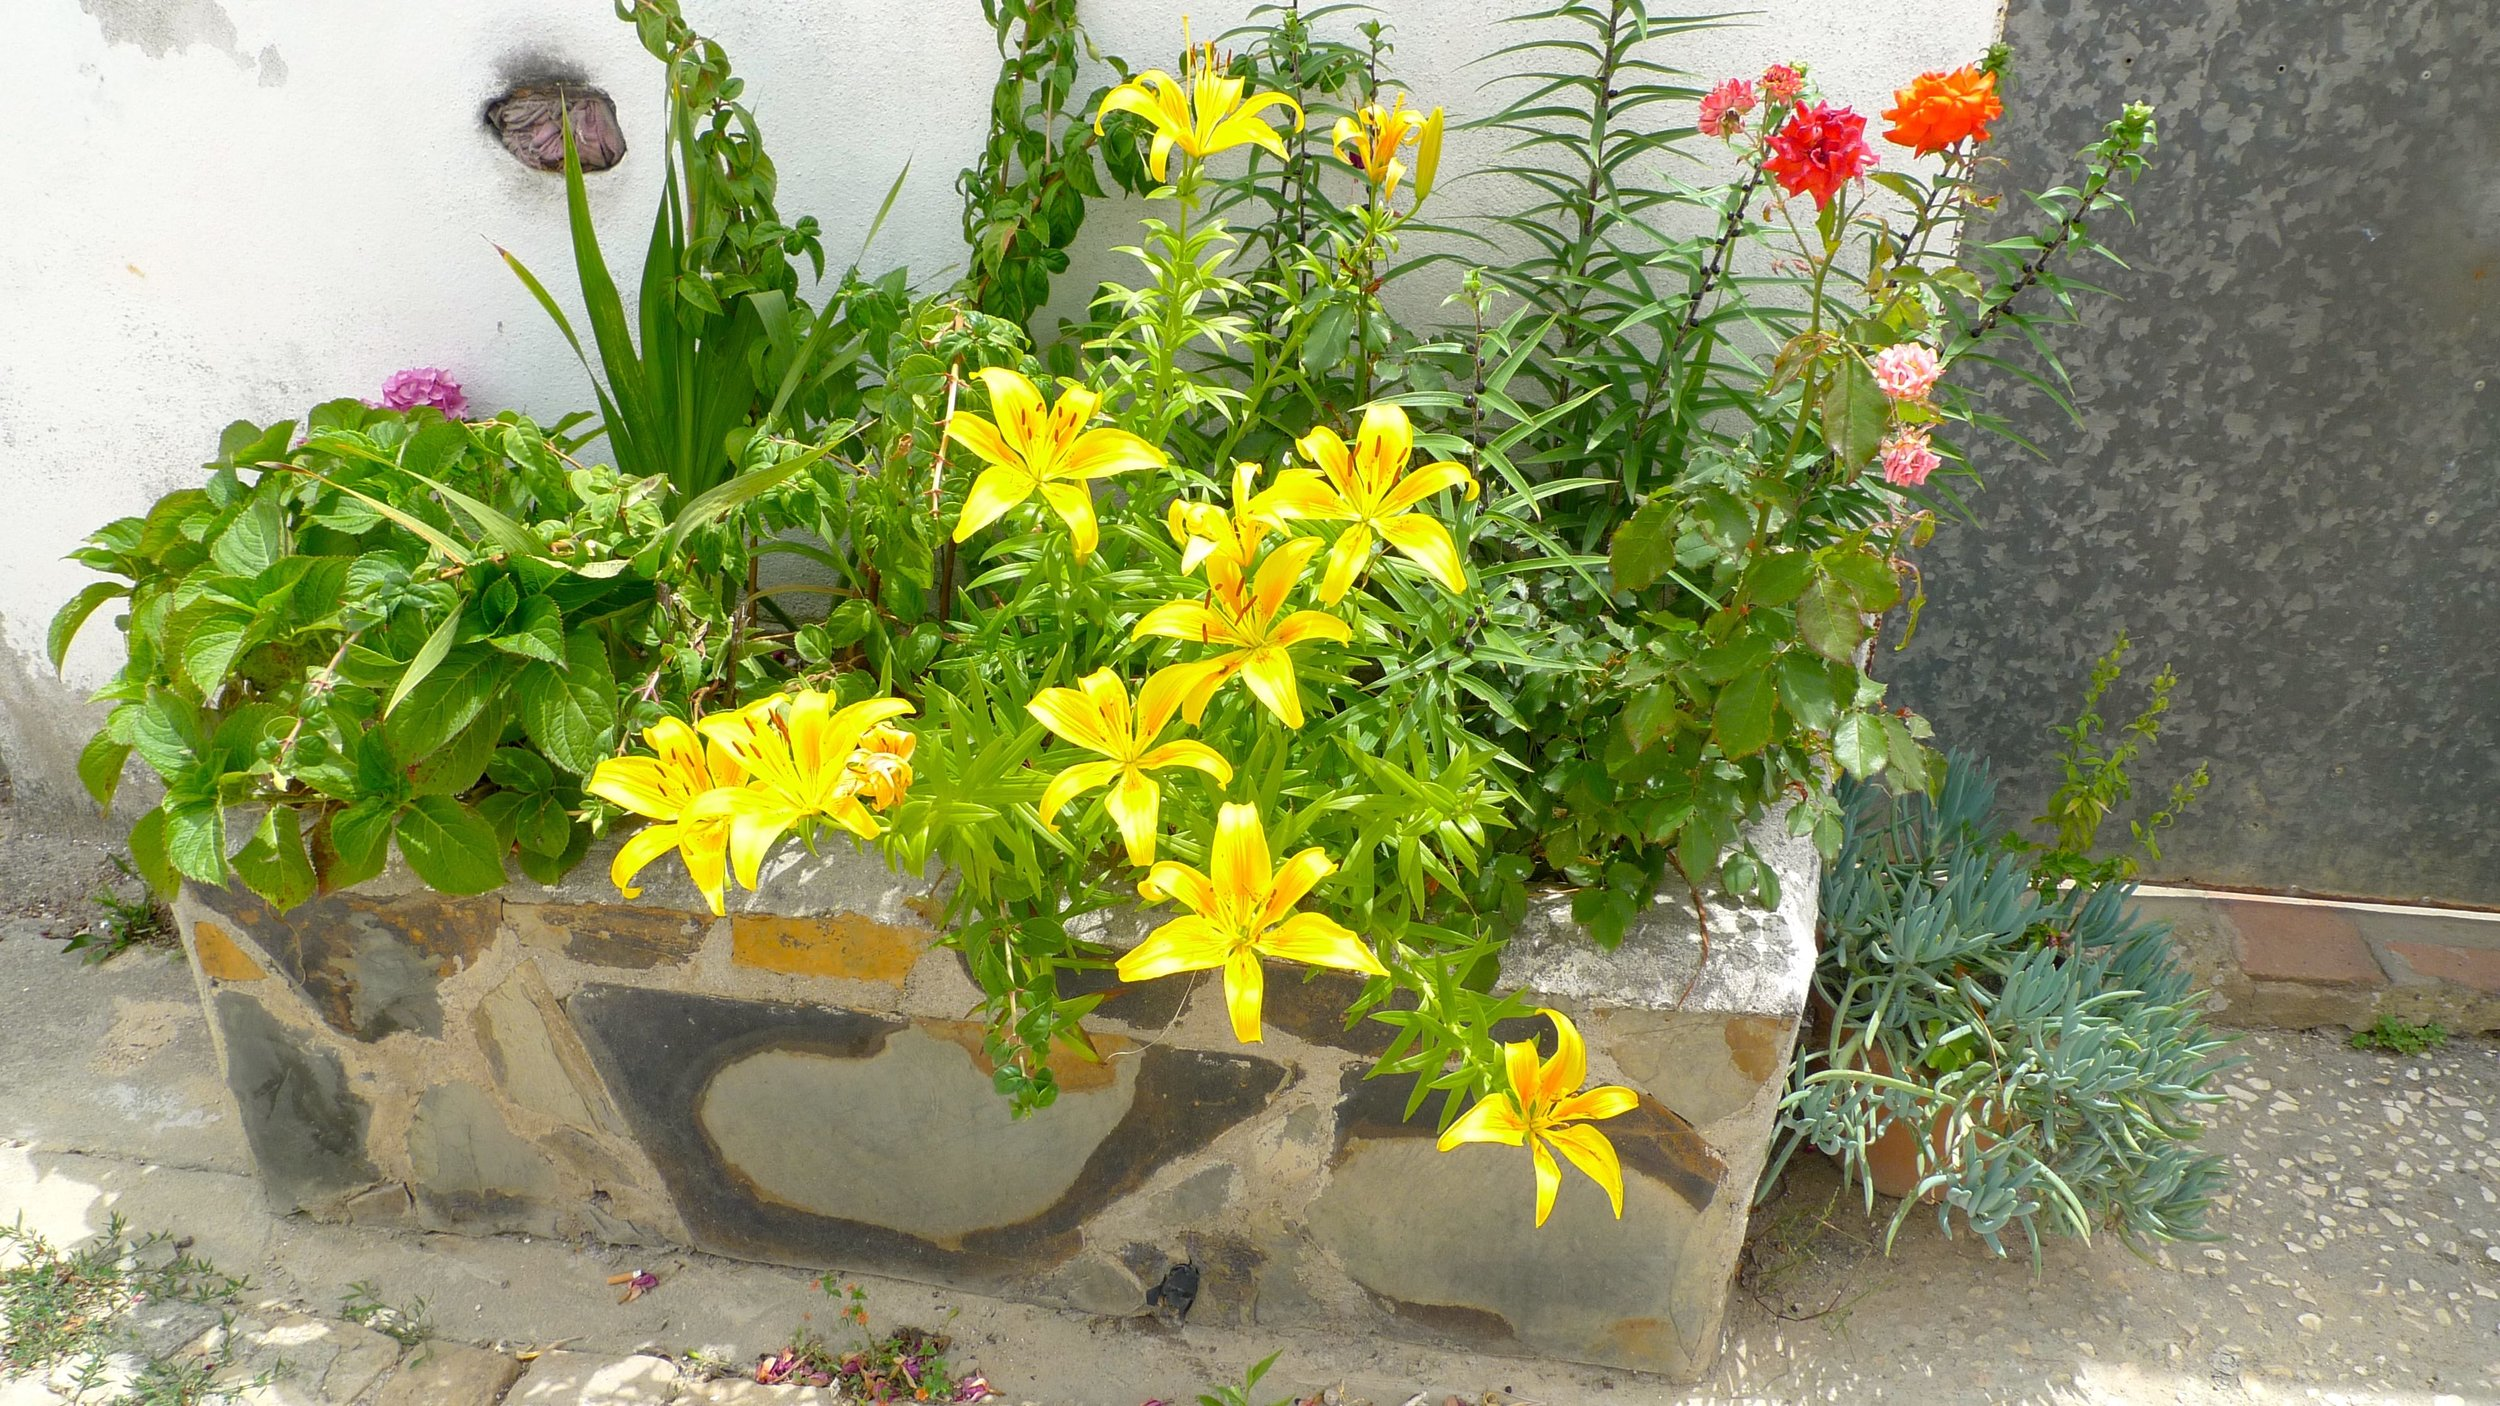 A stone planter complete with brightly coloured flowers